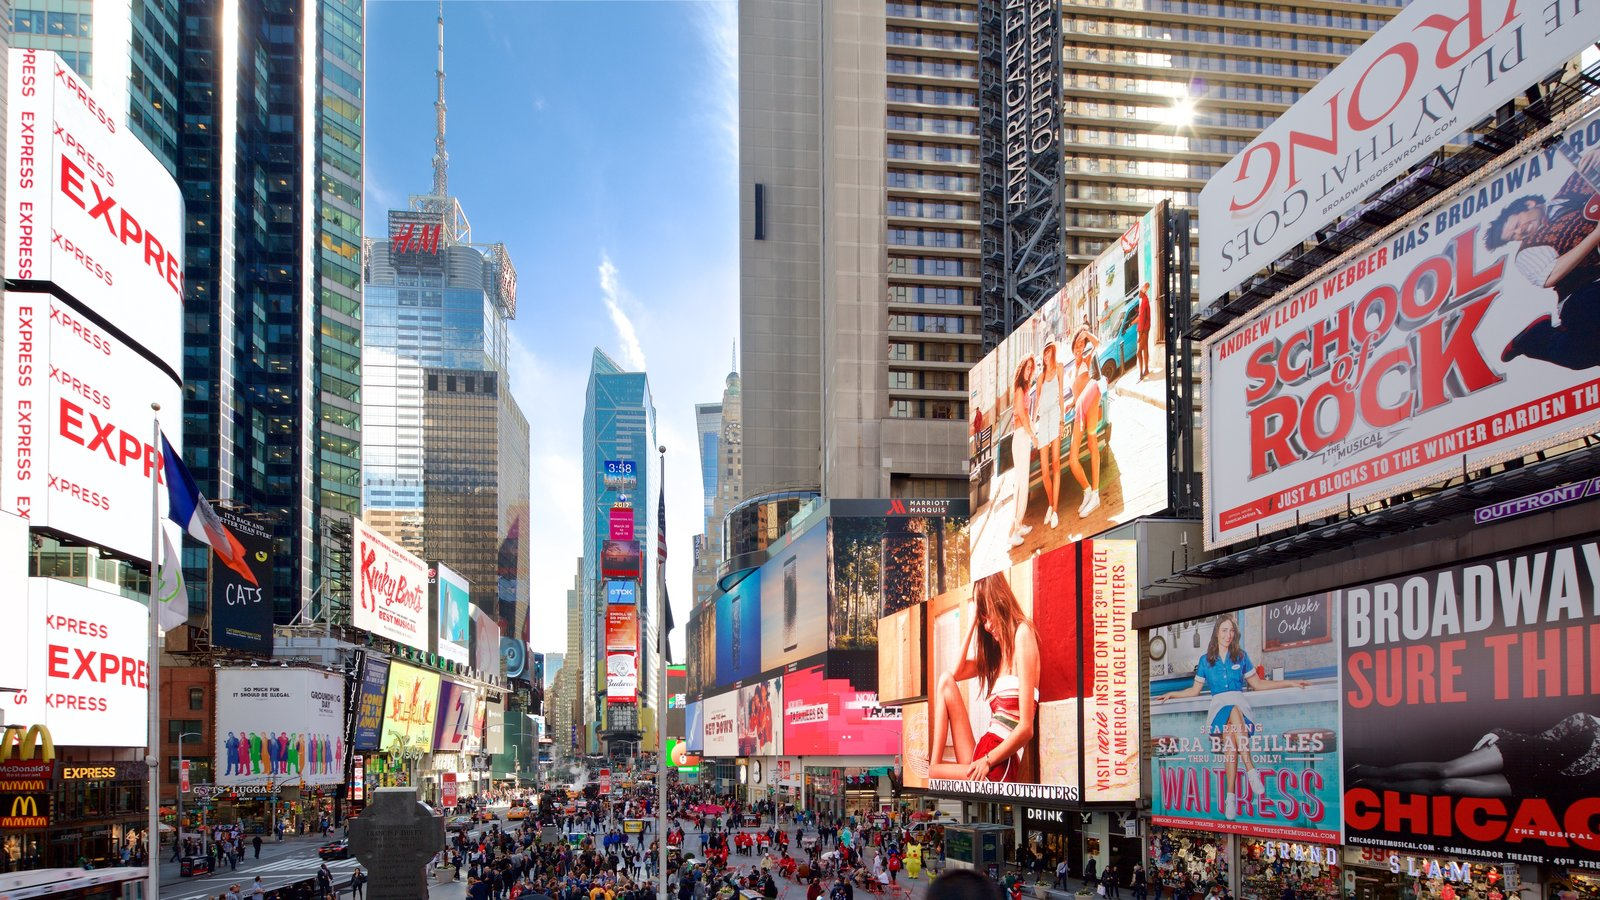 Times Square which includes a city, signage and a high rise building